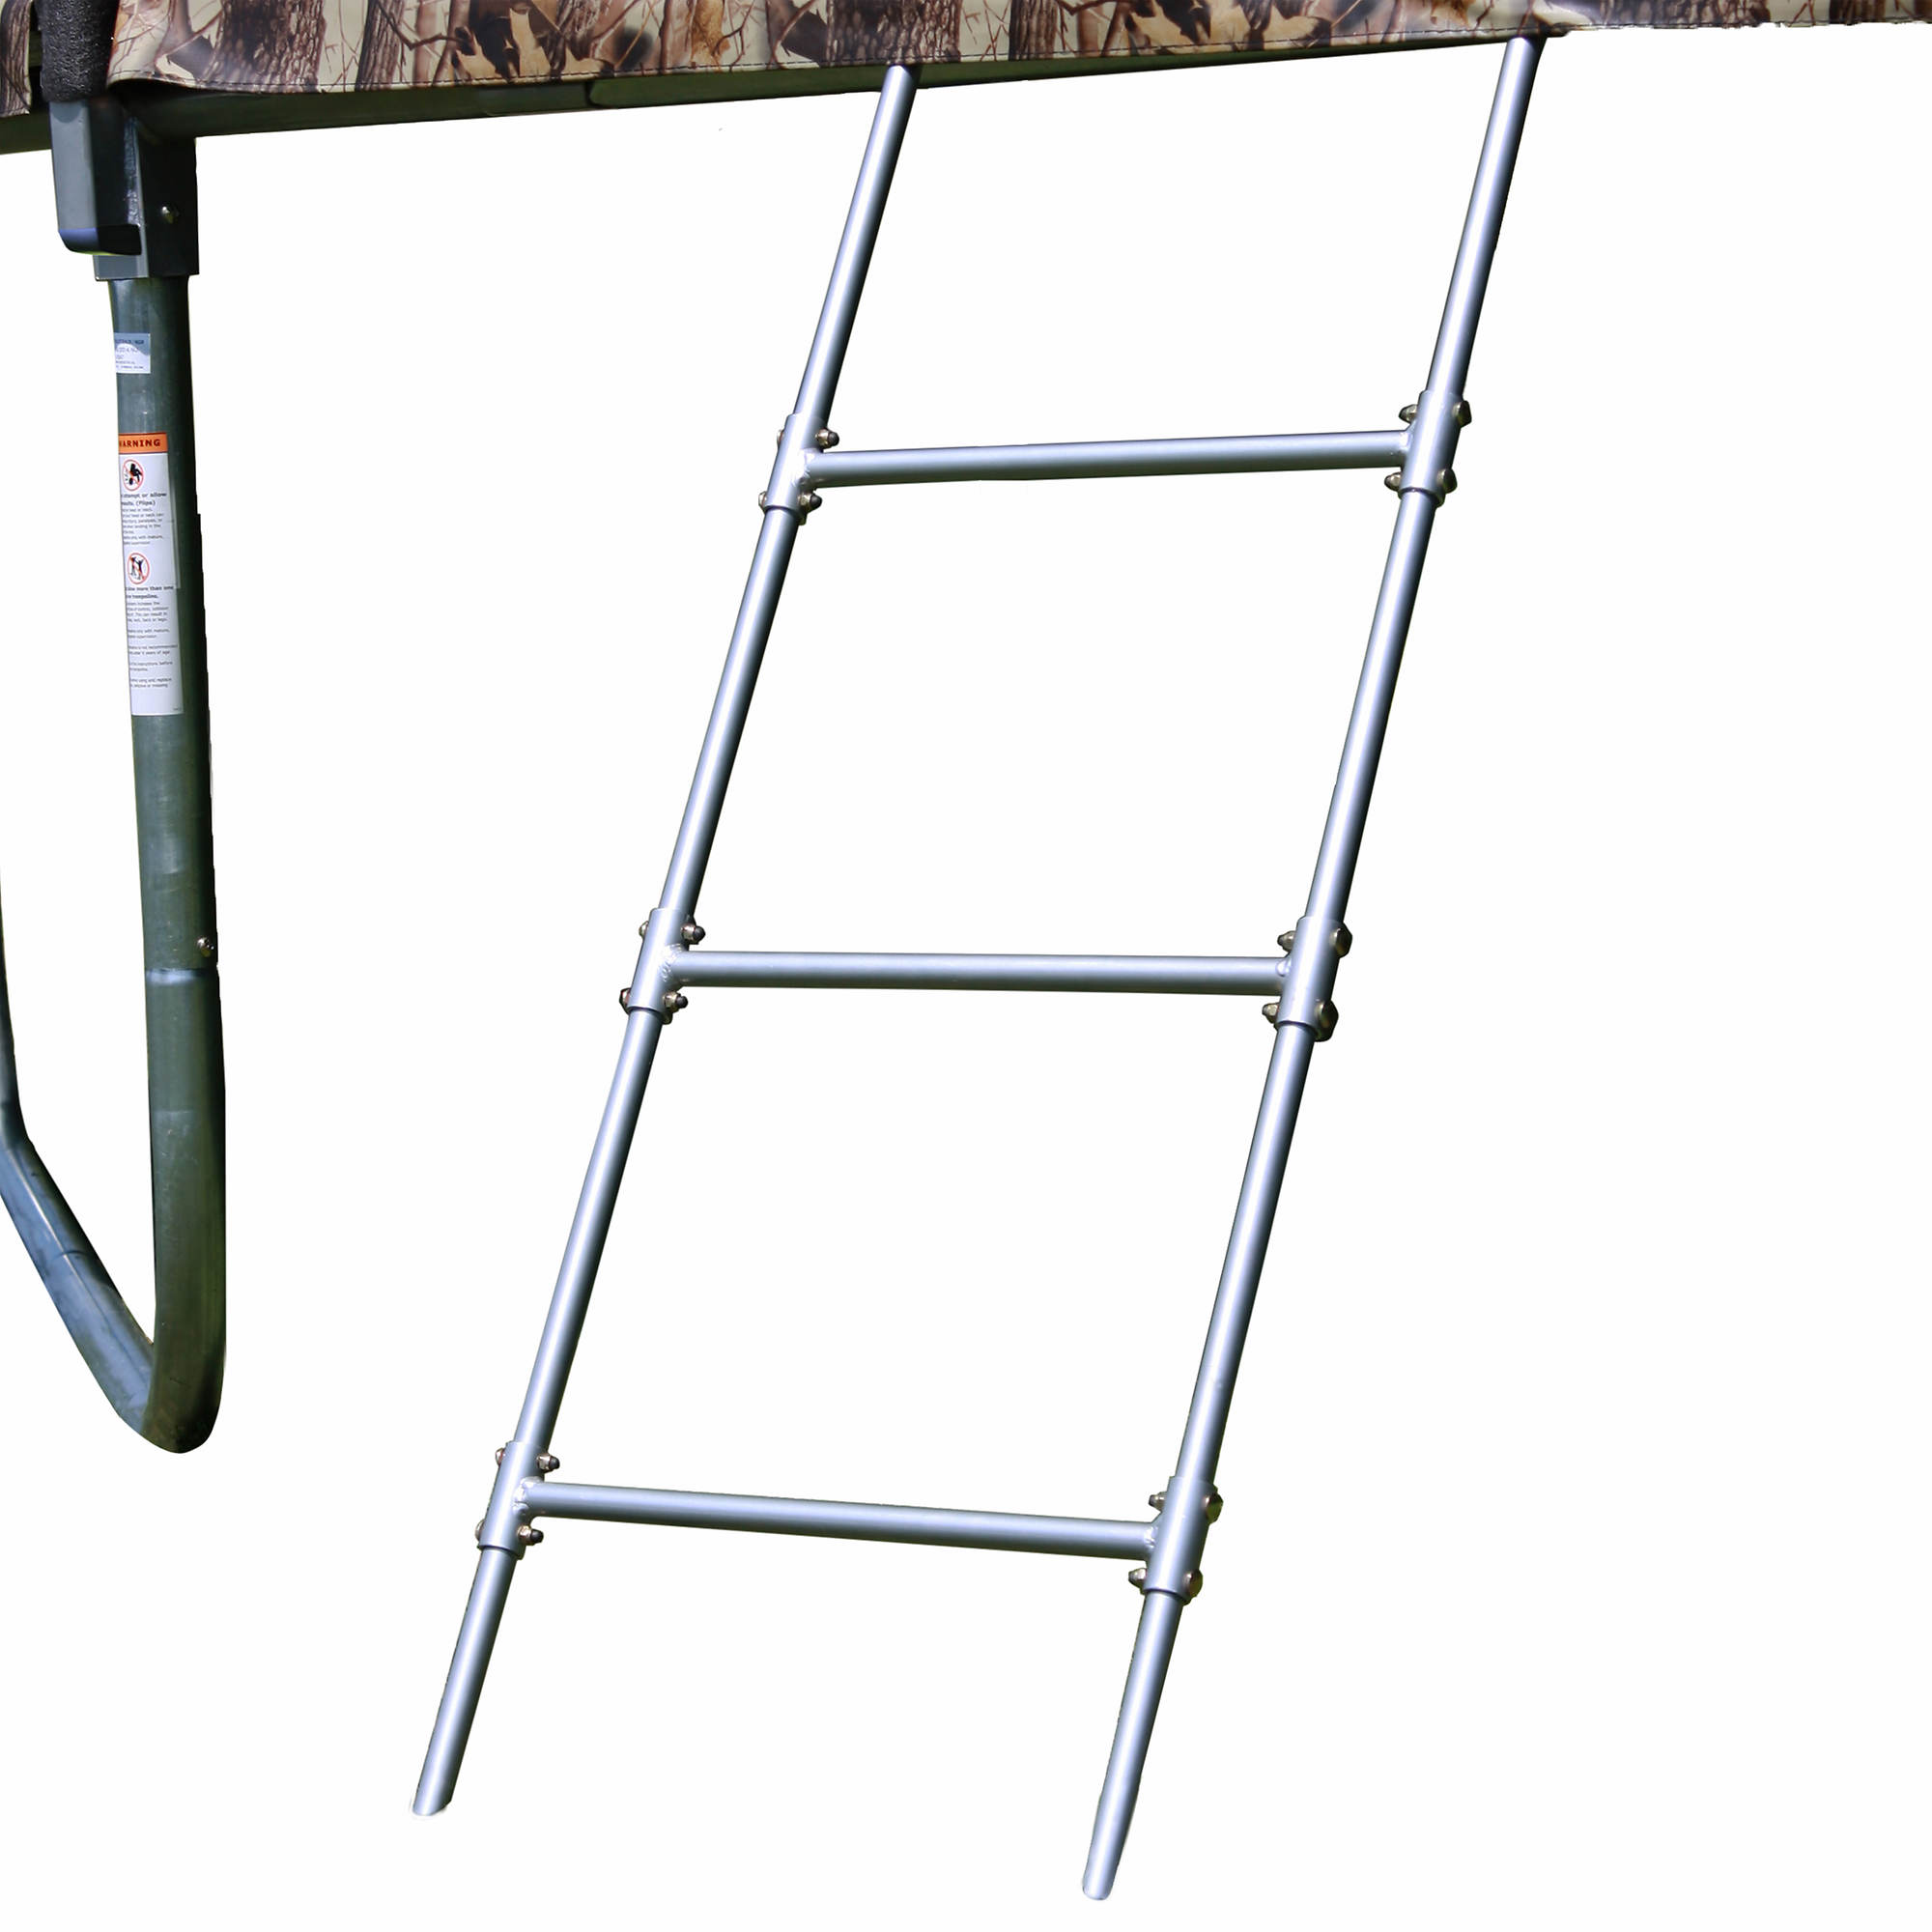 Jumpking Trampoline Ladder Instructions: Skywalker Trampolines Ladder